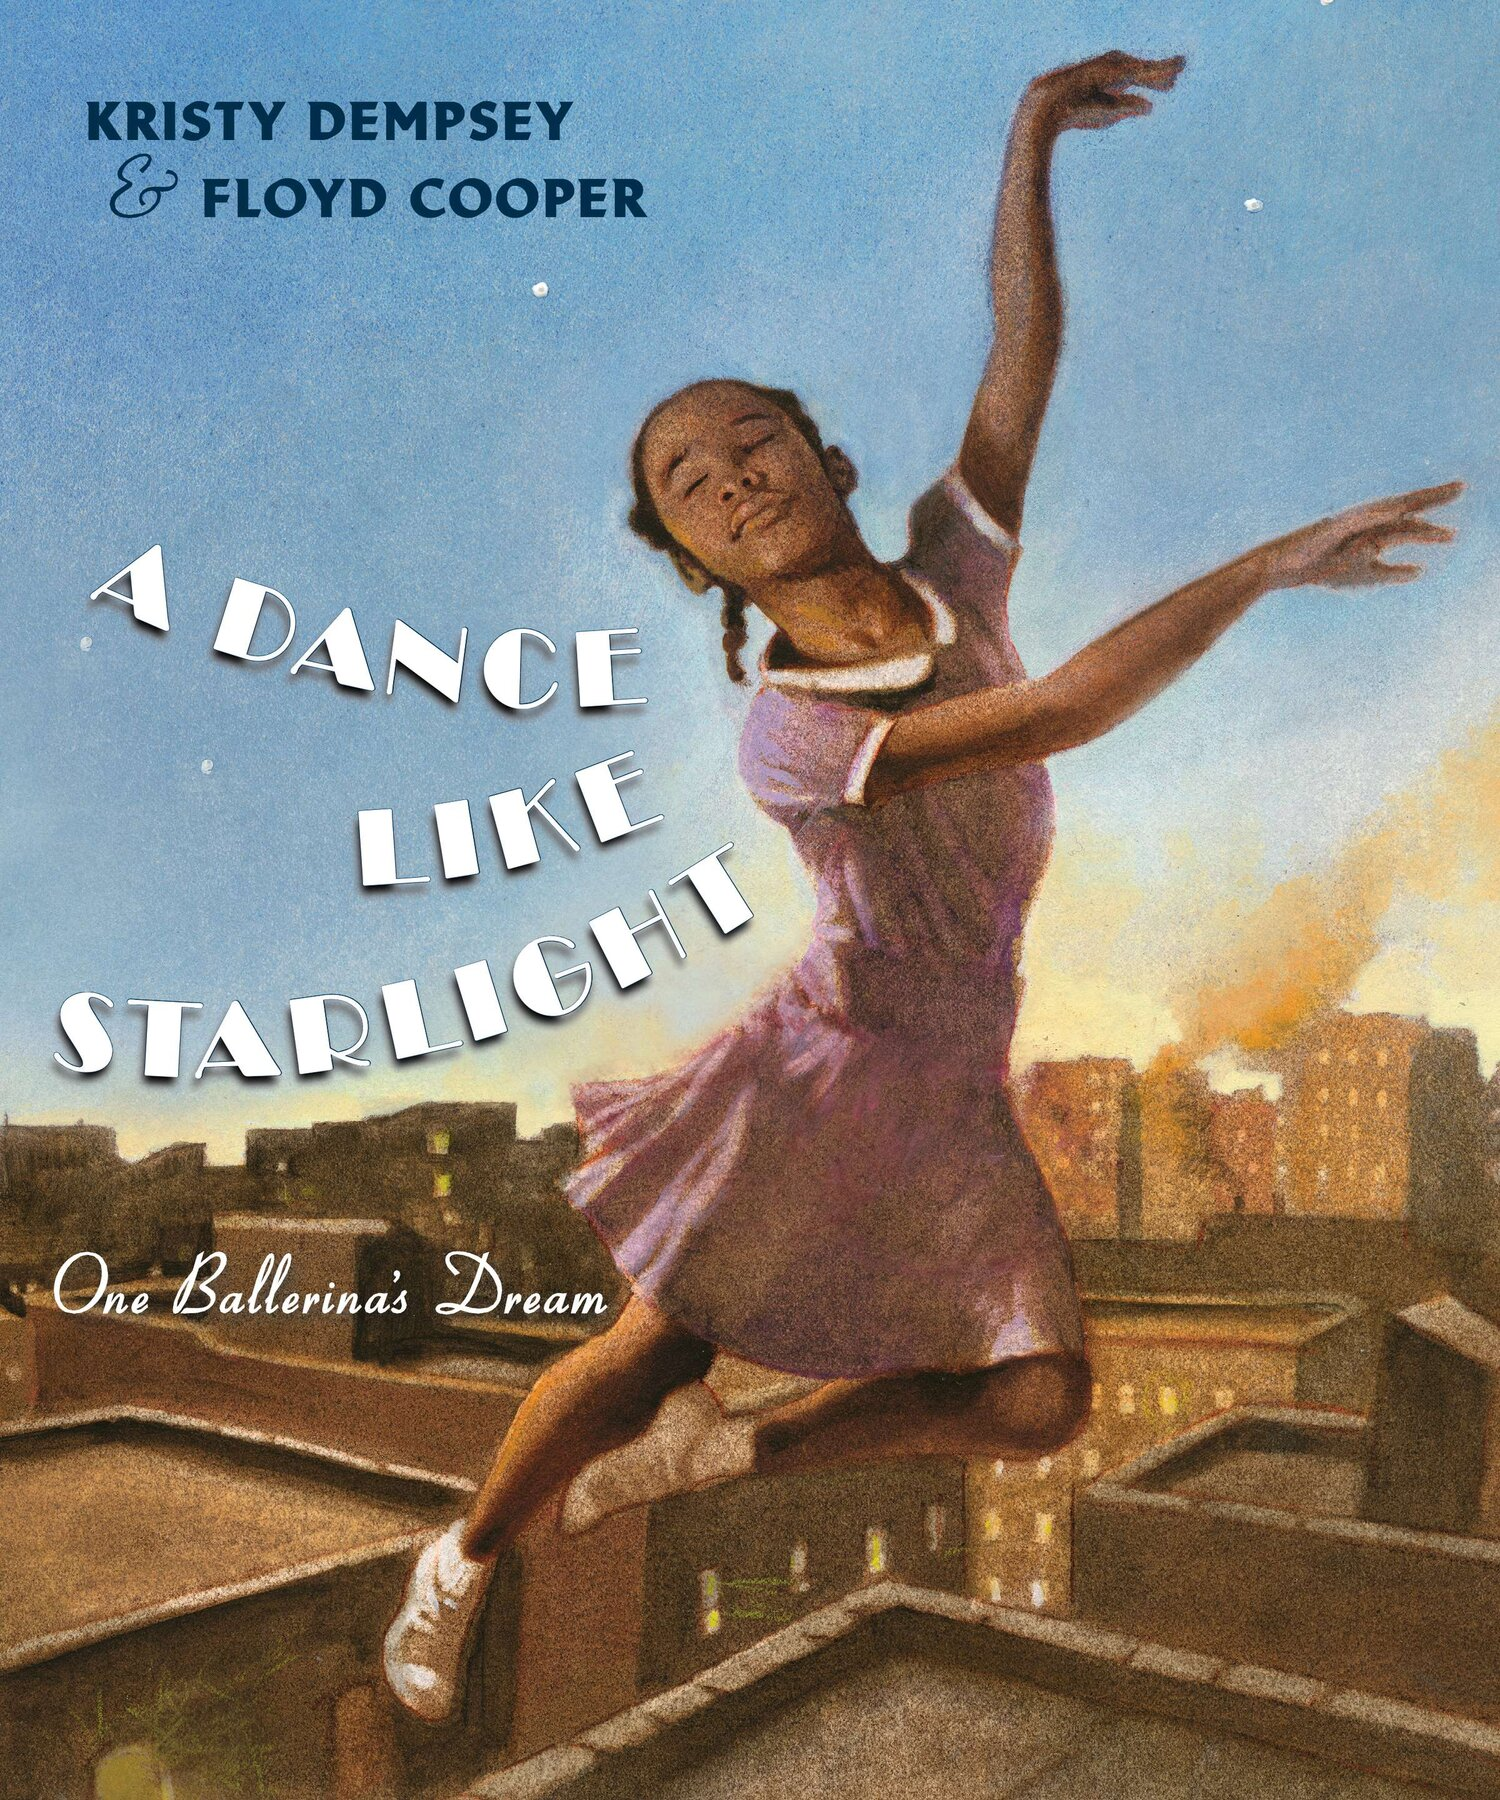 Excerpted from A Dance Like Starlight: One Ballerina's Dream by Kristy Dempsey, illustrated by Floyd Cooper. Text copyright 2014 by Kristy Dempsey. Illustrations copyright 2014 by Floyd Cooper. Excerpted by permission of Philomel Books.